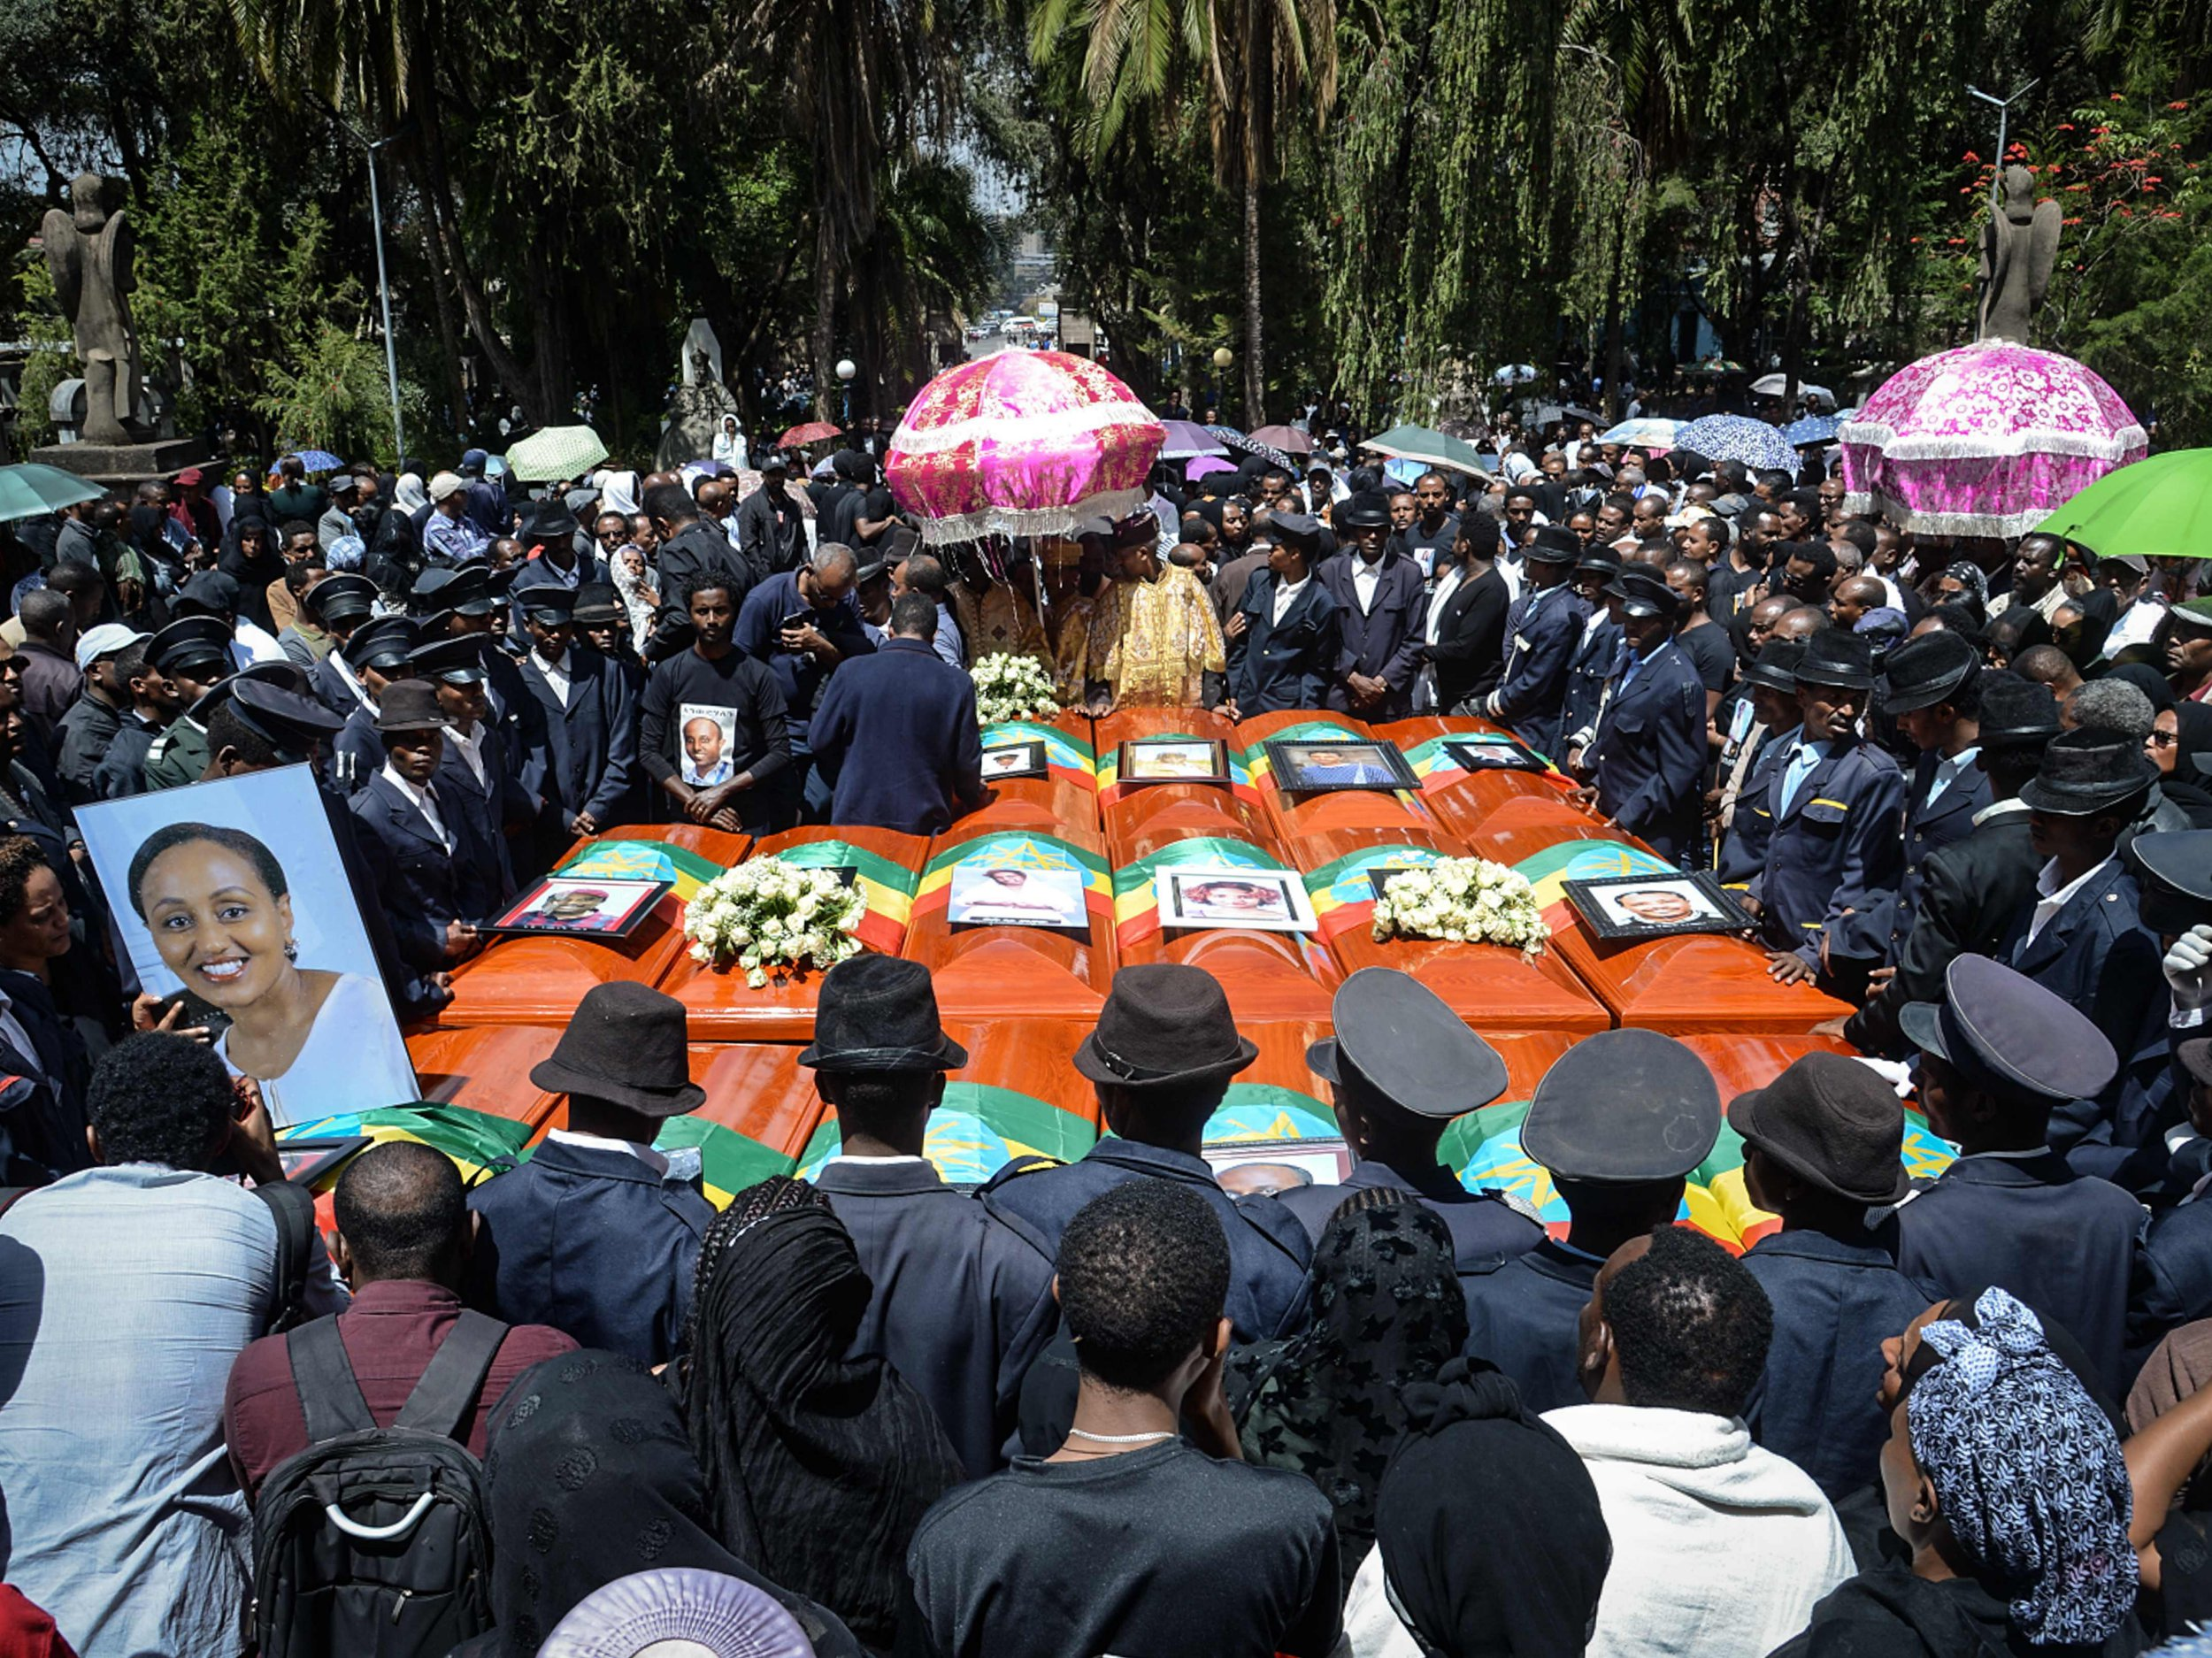 TOPSHOT - Coffins of victims of the crashed accident of Ethiopian Airlines are gathered during the mass funeral at Holy Trinity Cathedral in Addis Ababa, Ethiopia, on March 17, 2019. - The crash of Flight ET 302 minutes into its flight to Nairobi on March 10 killed 157 people onboard and caused the worldwide grounding of the Boeing 737 MAX 8 aircraft model involved in the disaster. (Photo by Samuel HABTAB / AFP)SAMUEL HABTAB/AFP/Getty Images